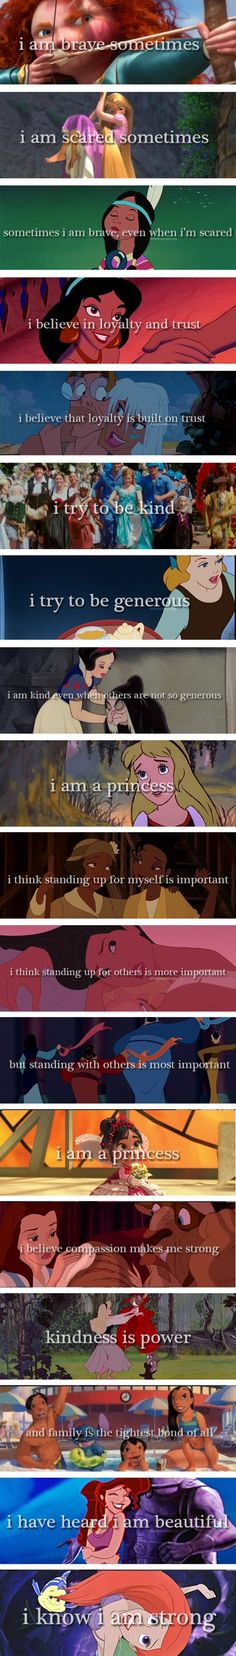 I am a Princess.